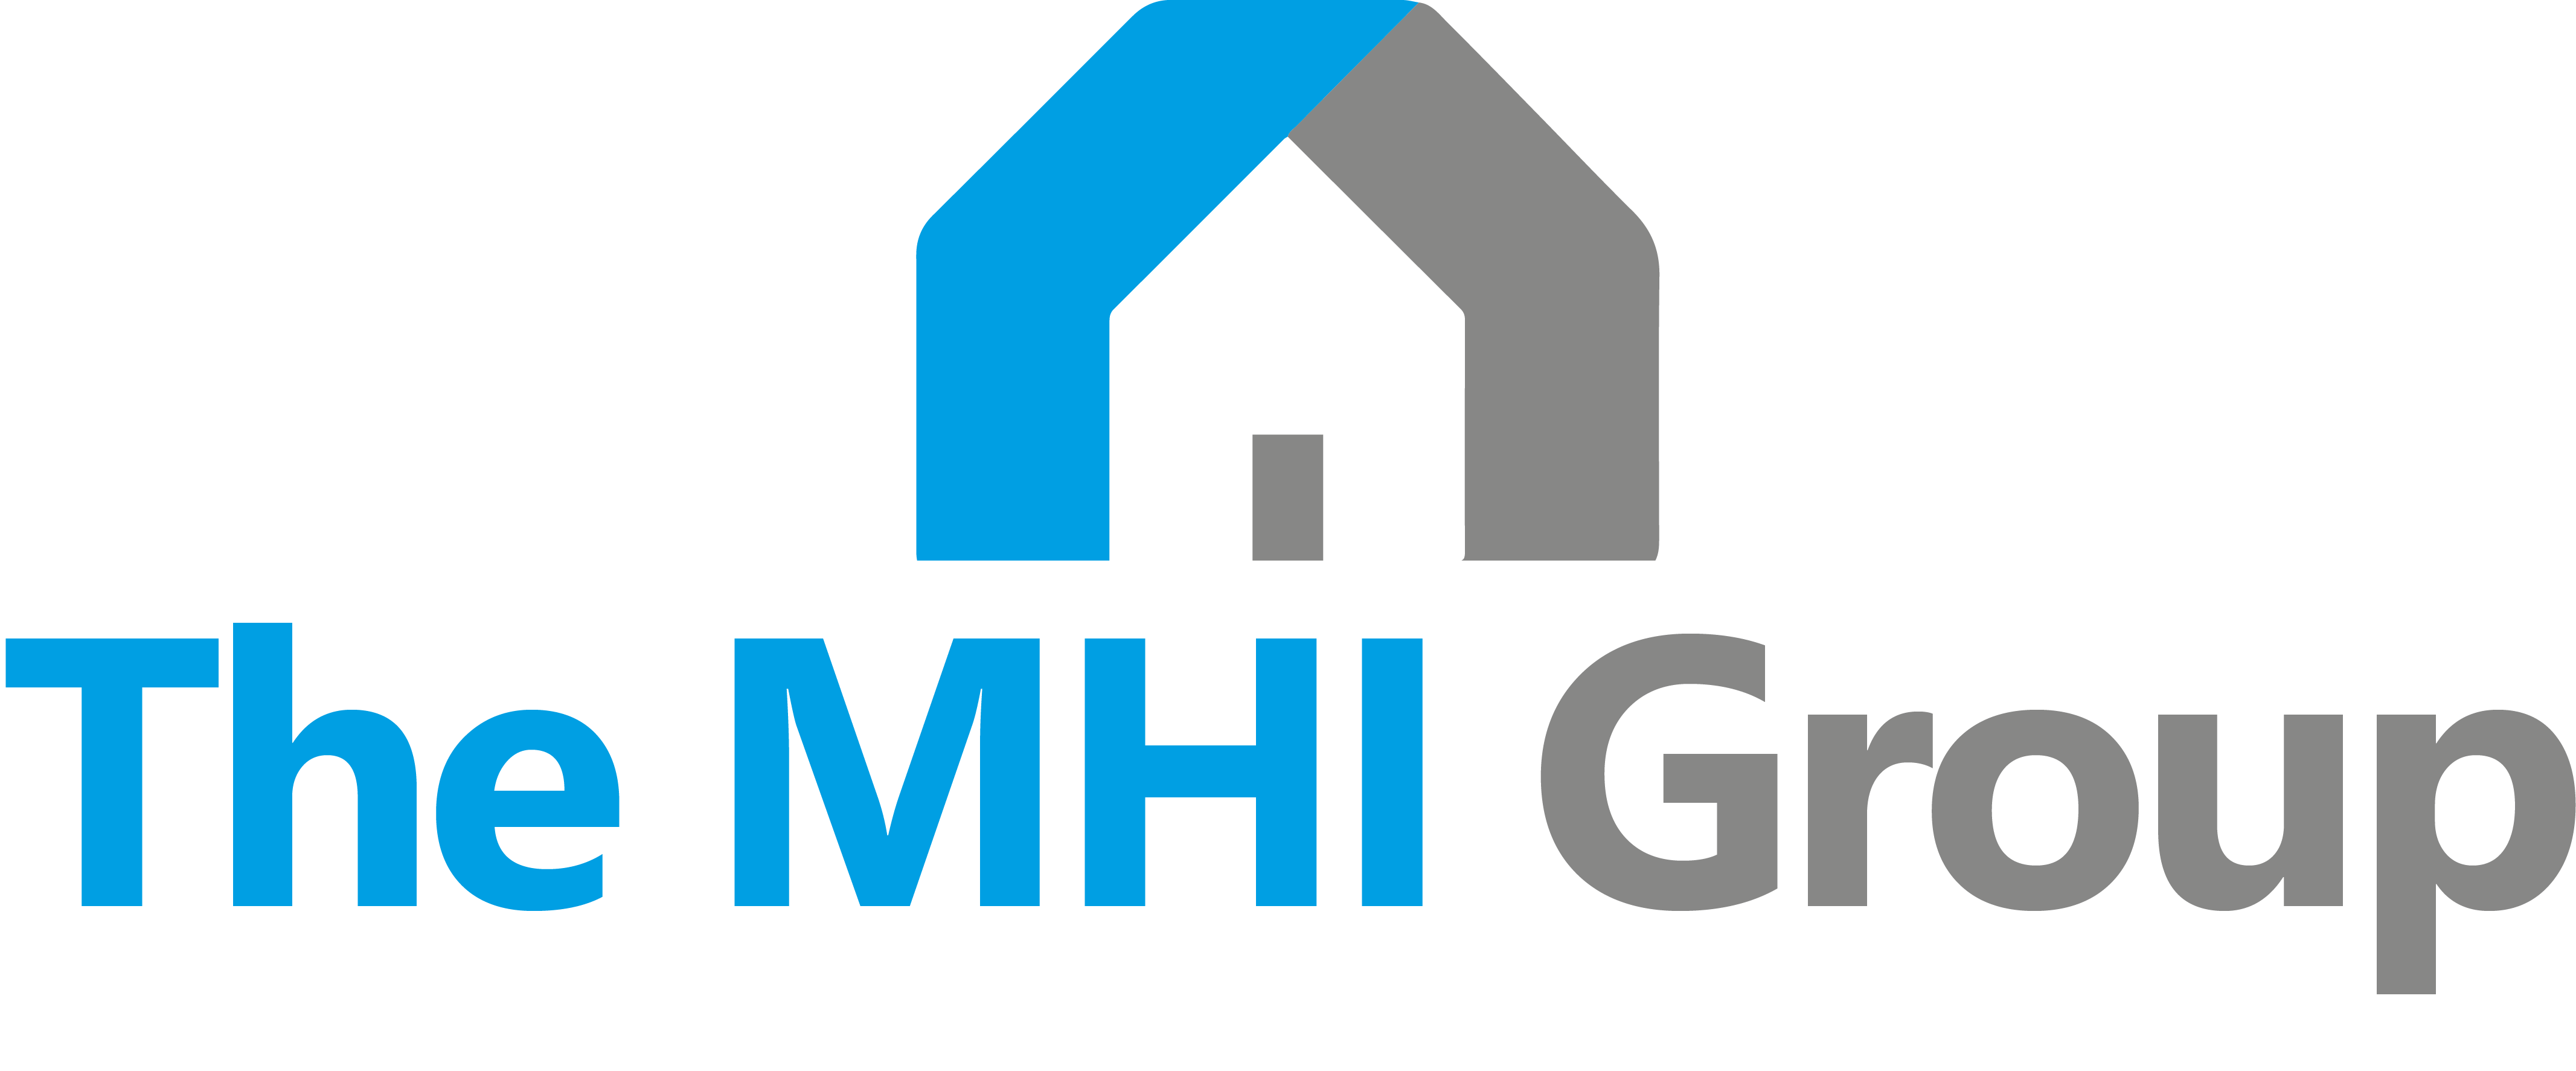 Absolutely fantastic communication from the MHI Group